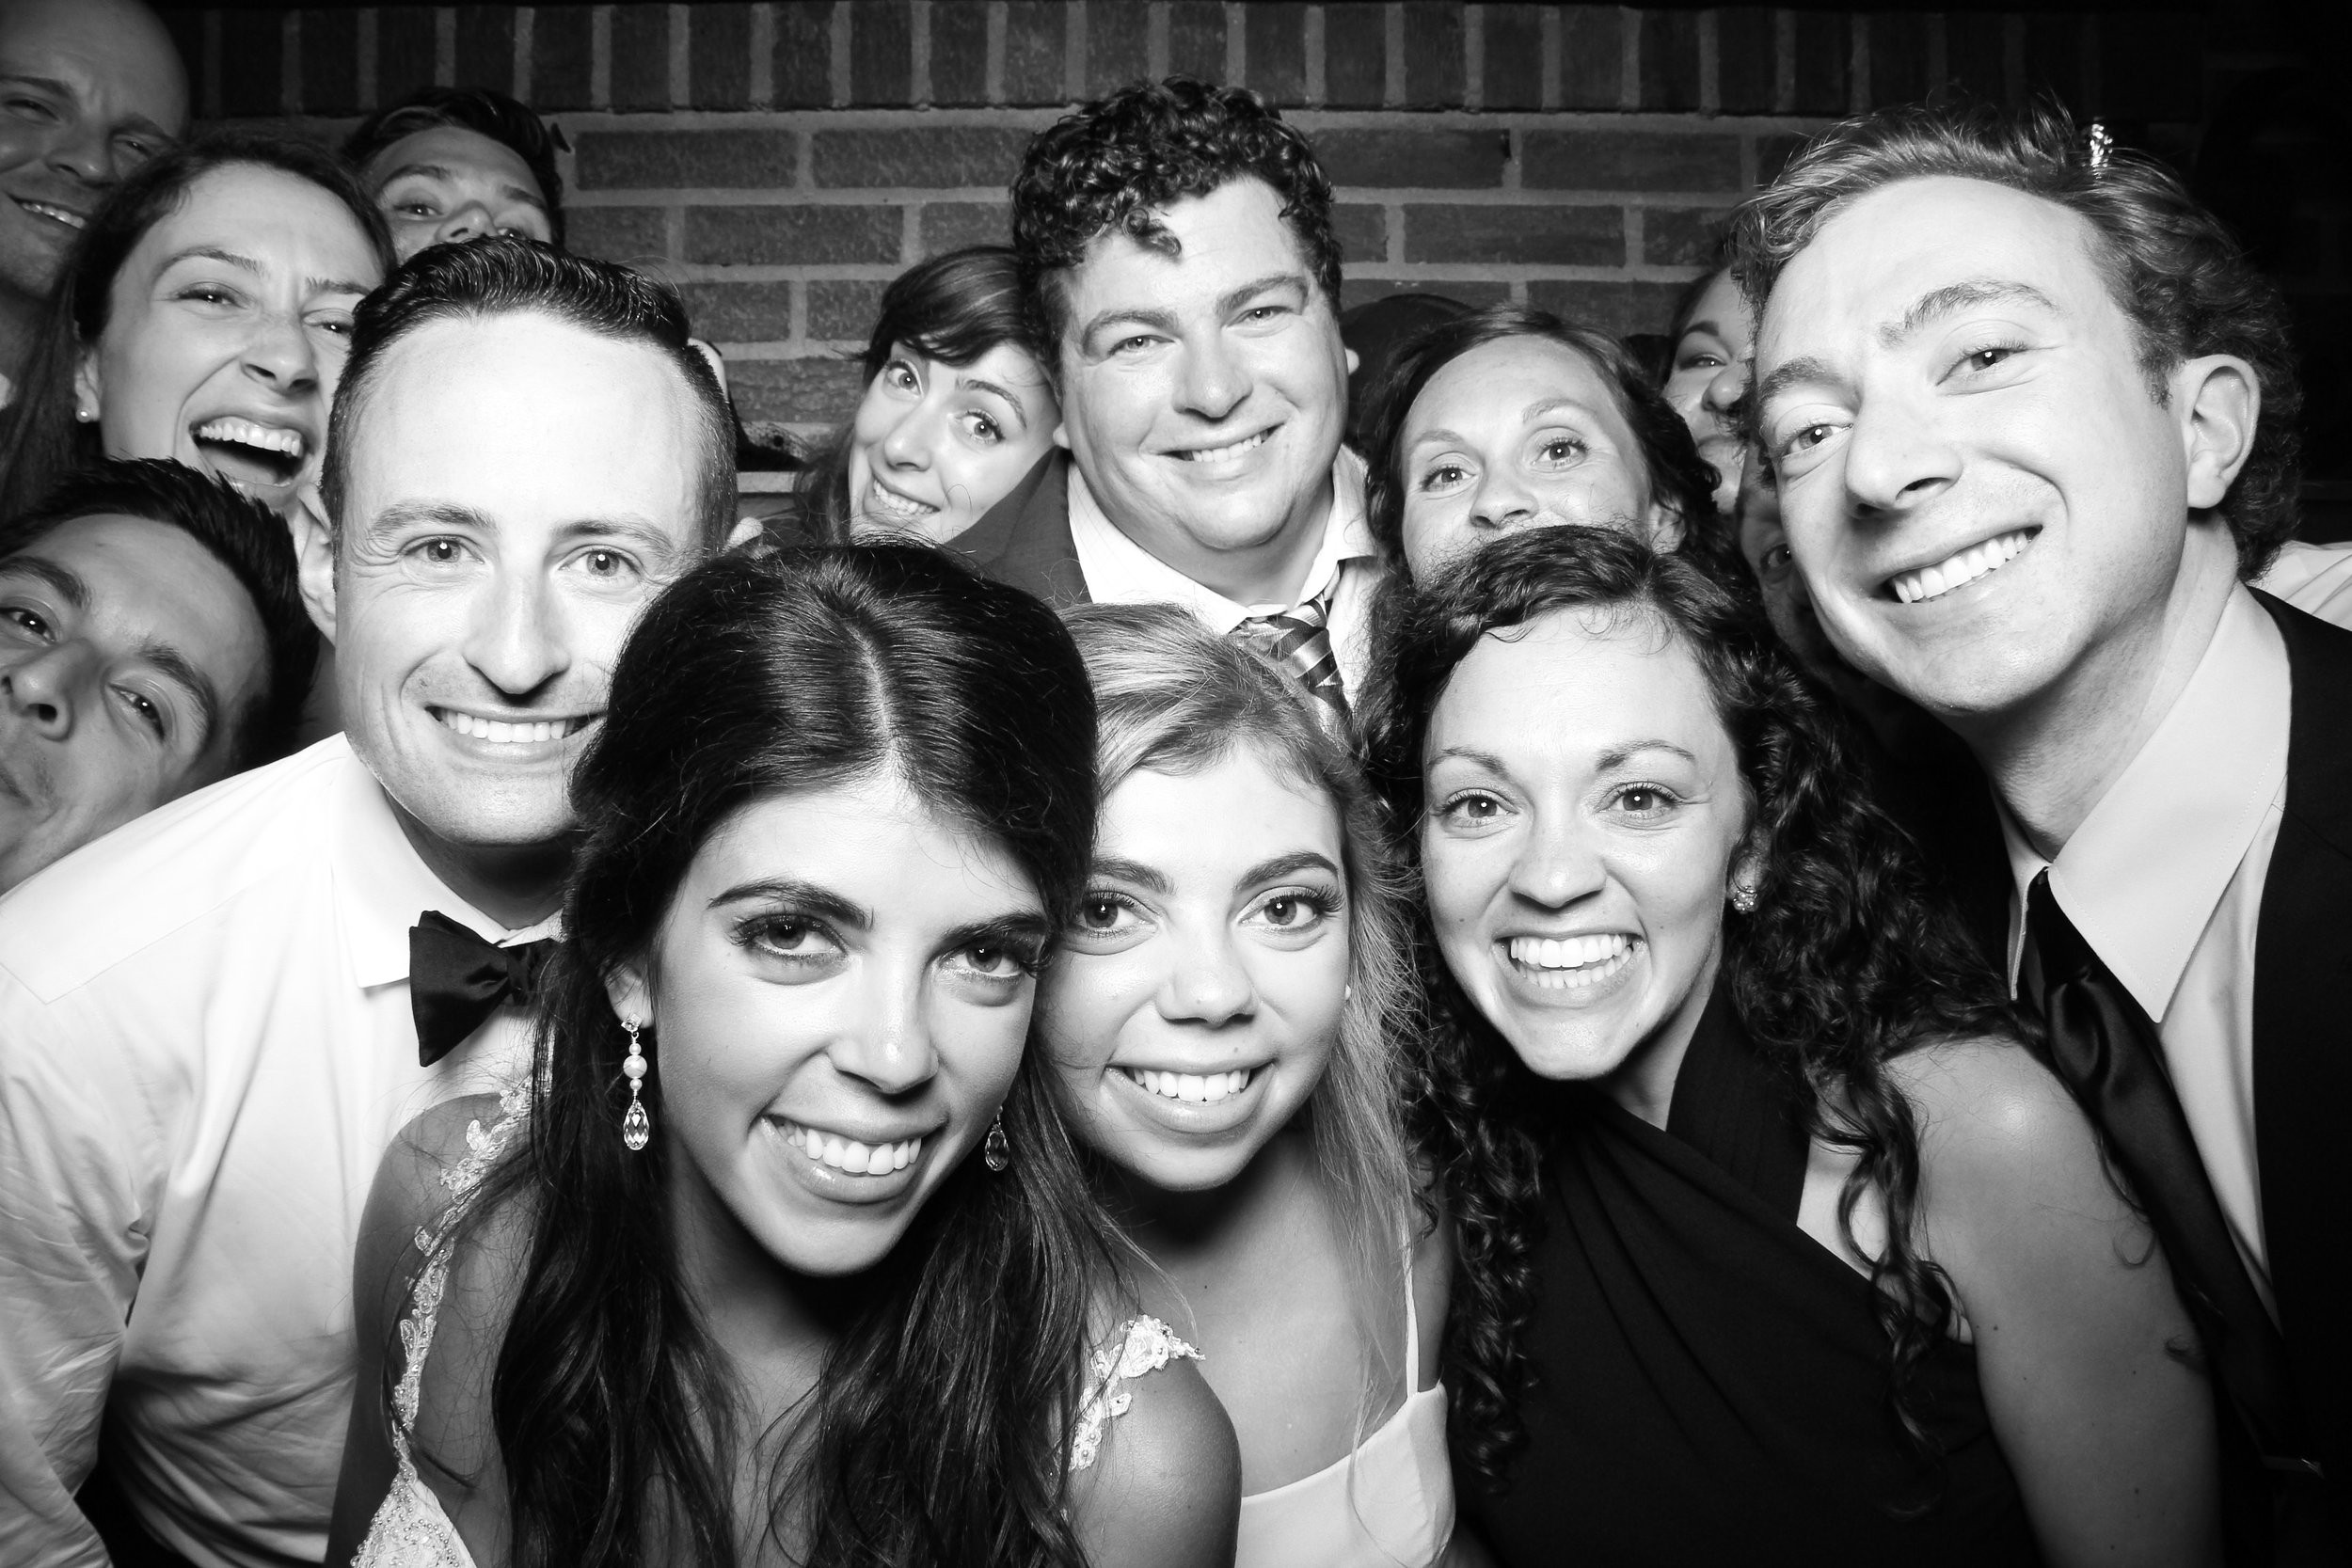 Medinah_Country_Club_Weddng_Reception_Photo_Booth_Cocktail_Hour_Foyer_23.jpg